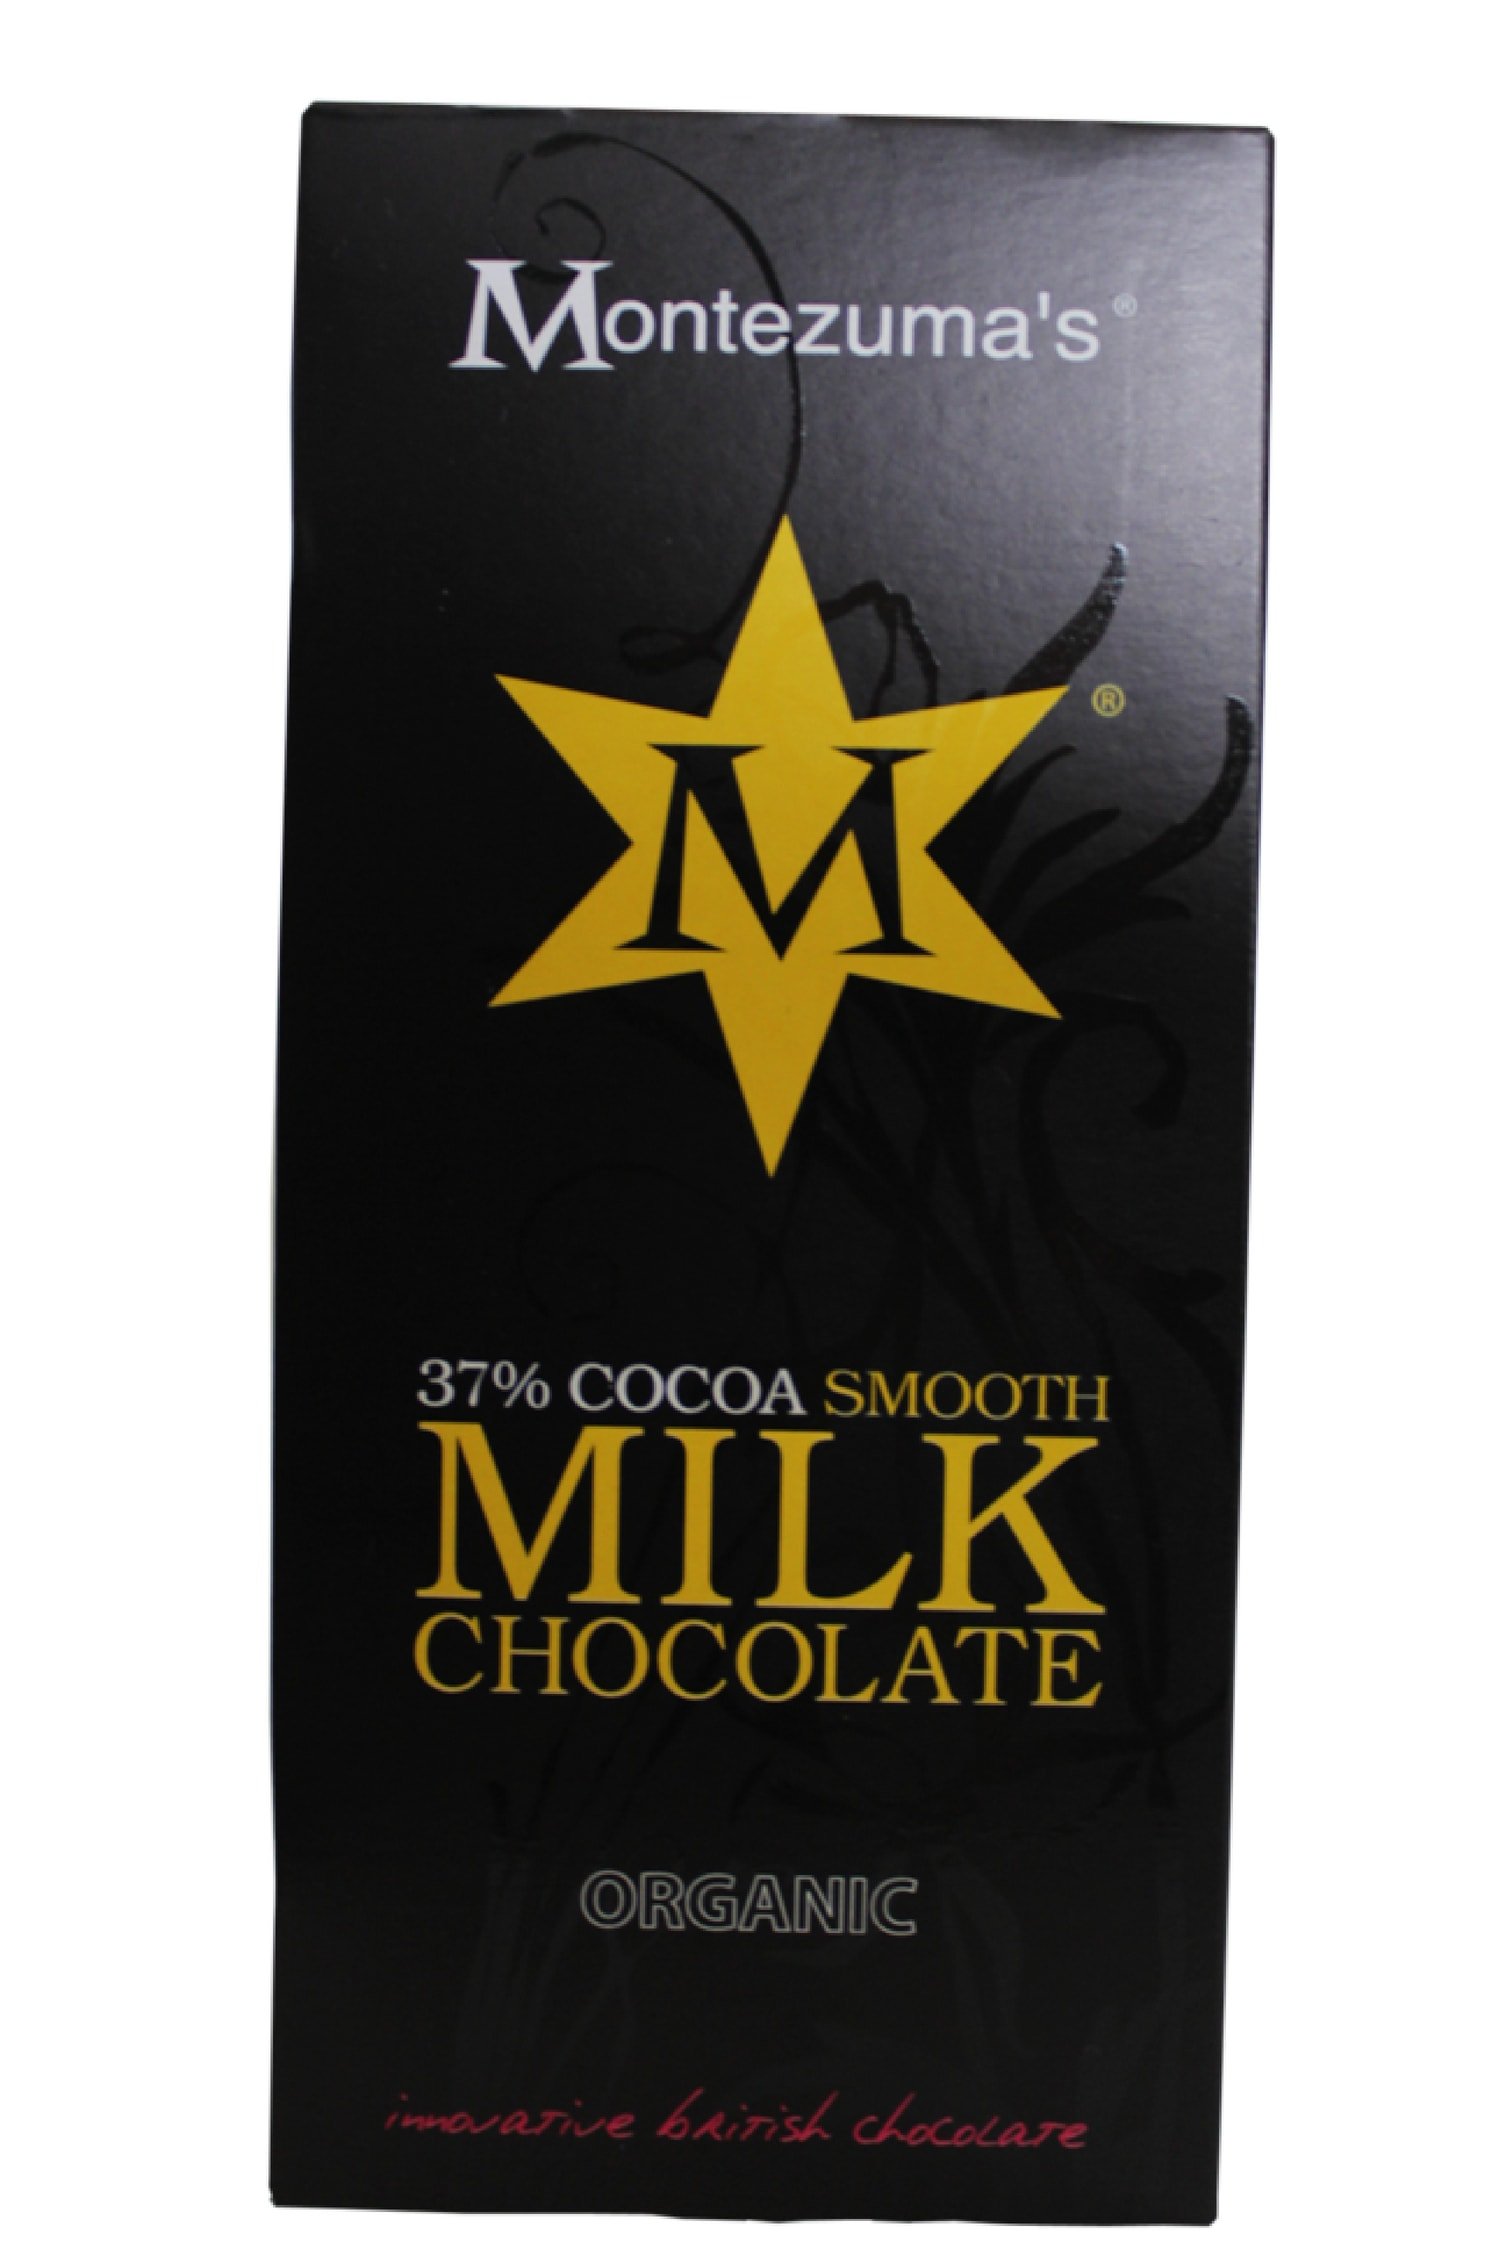 The organic milk chocolate bar is smooth and creamy